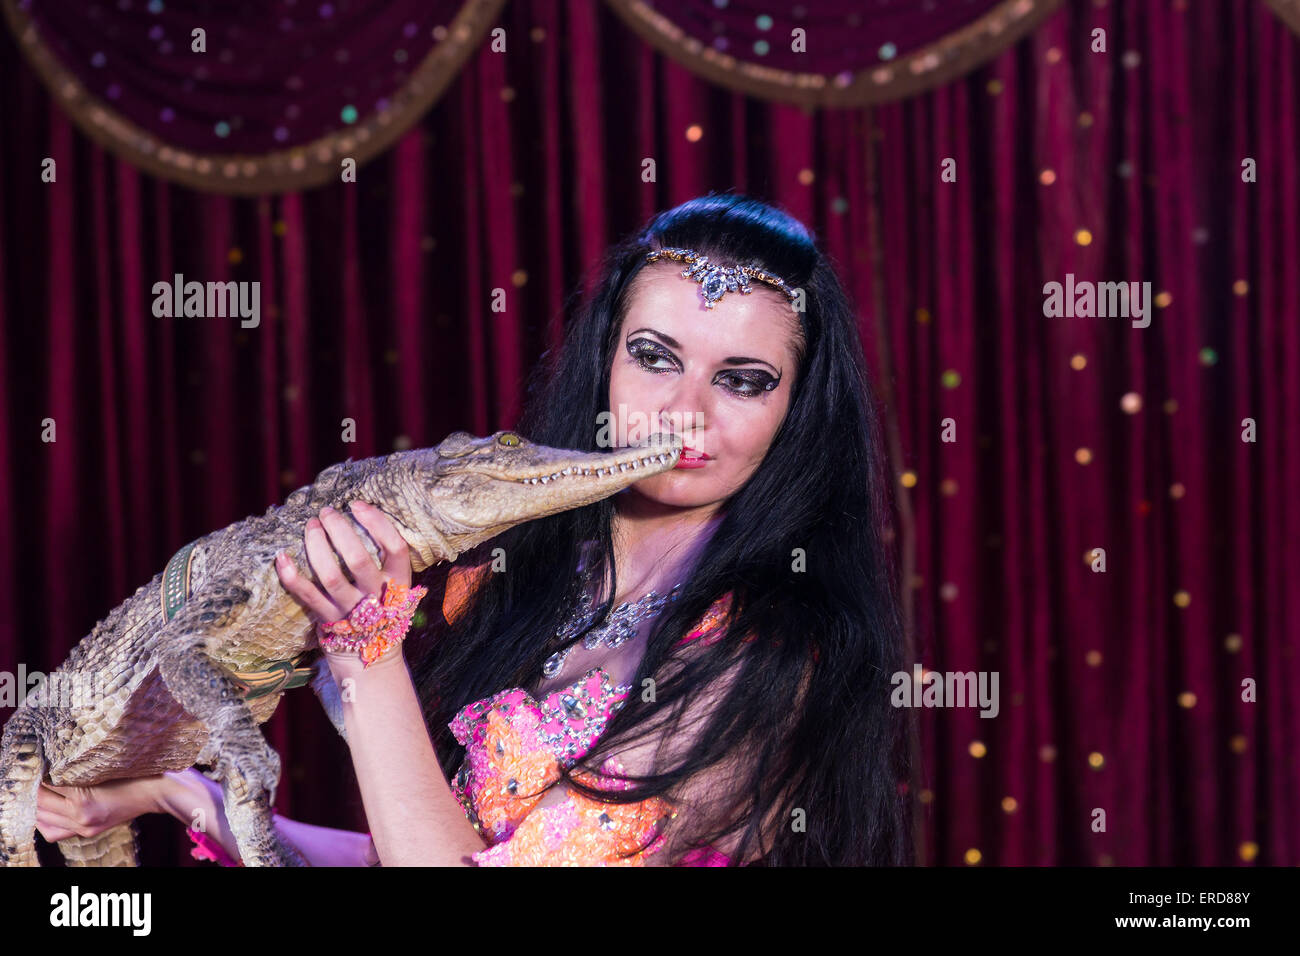 Close Up of Exotic Dark Haired Belly Dancer Wearing Bright Costume Holding Small Alligator on Stage with Red Curtain Stock Photo